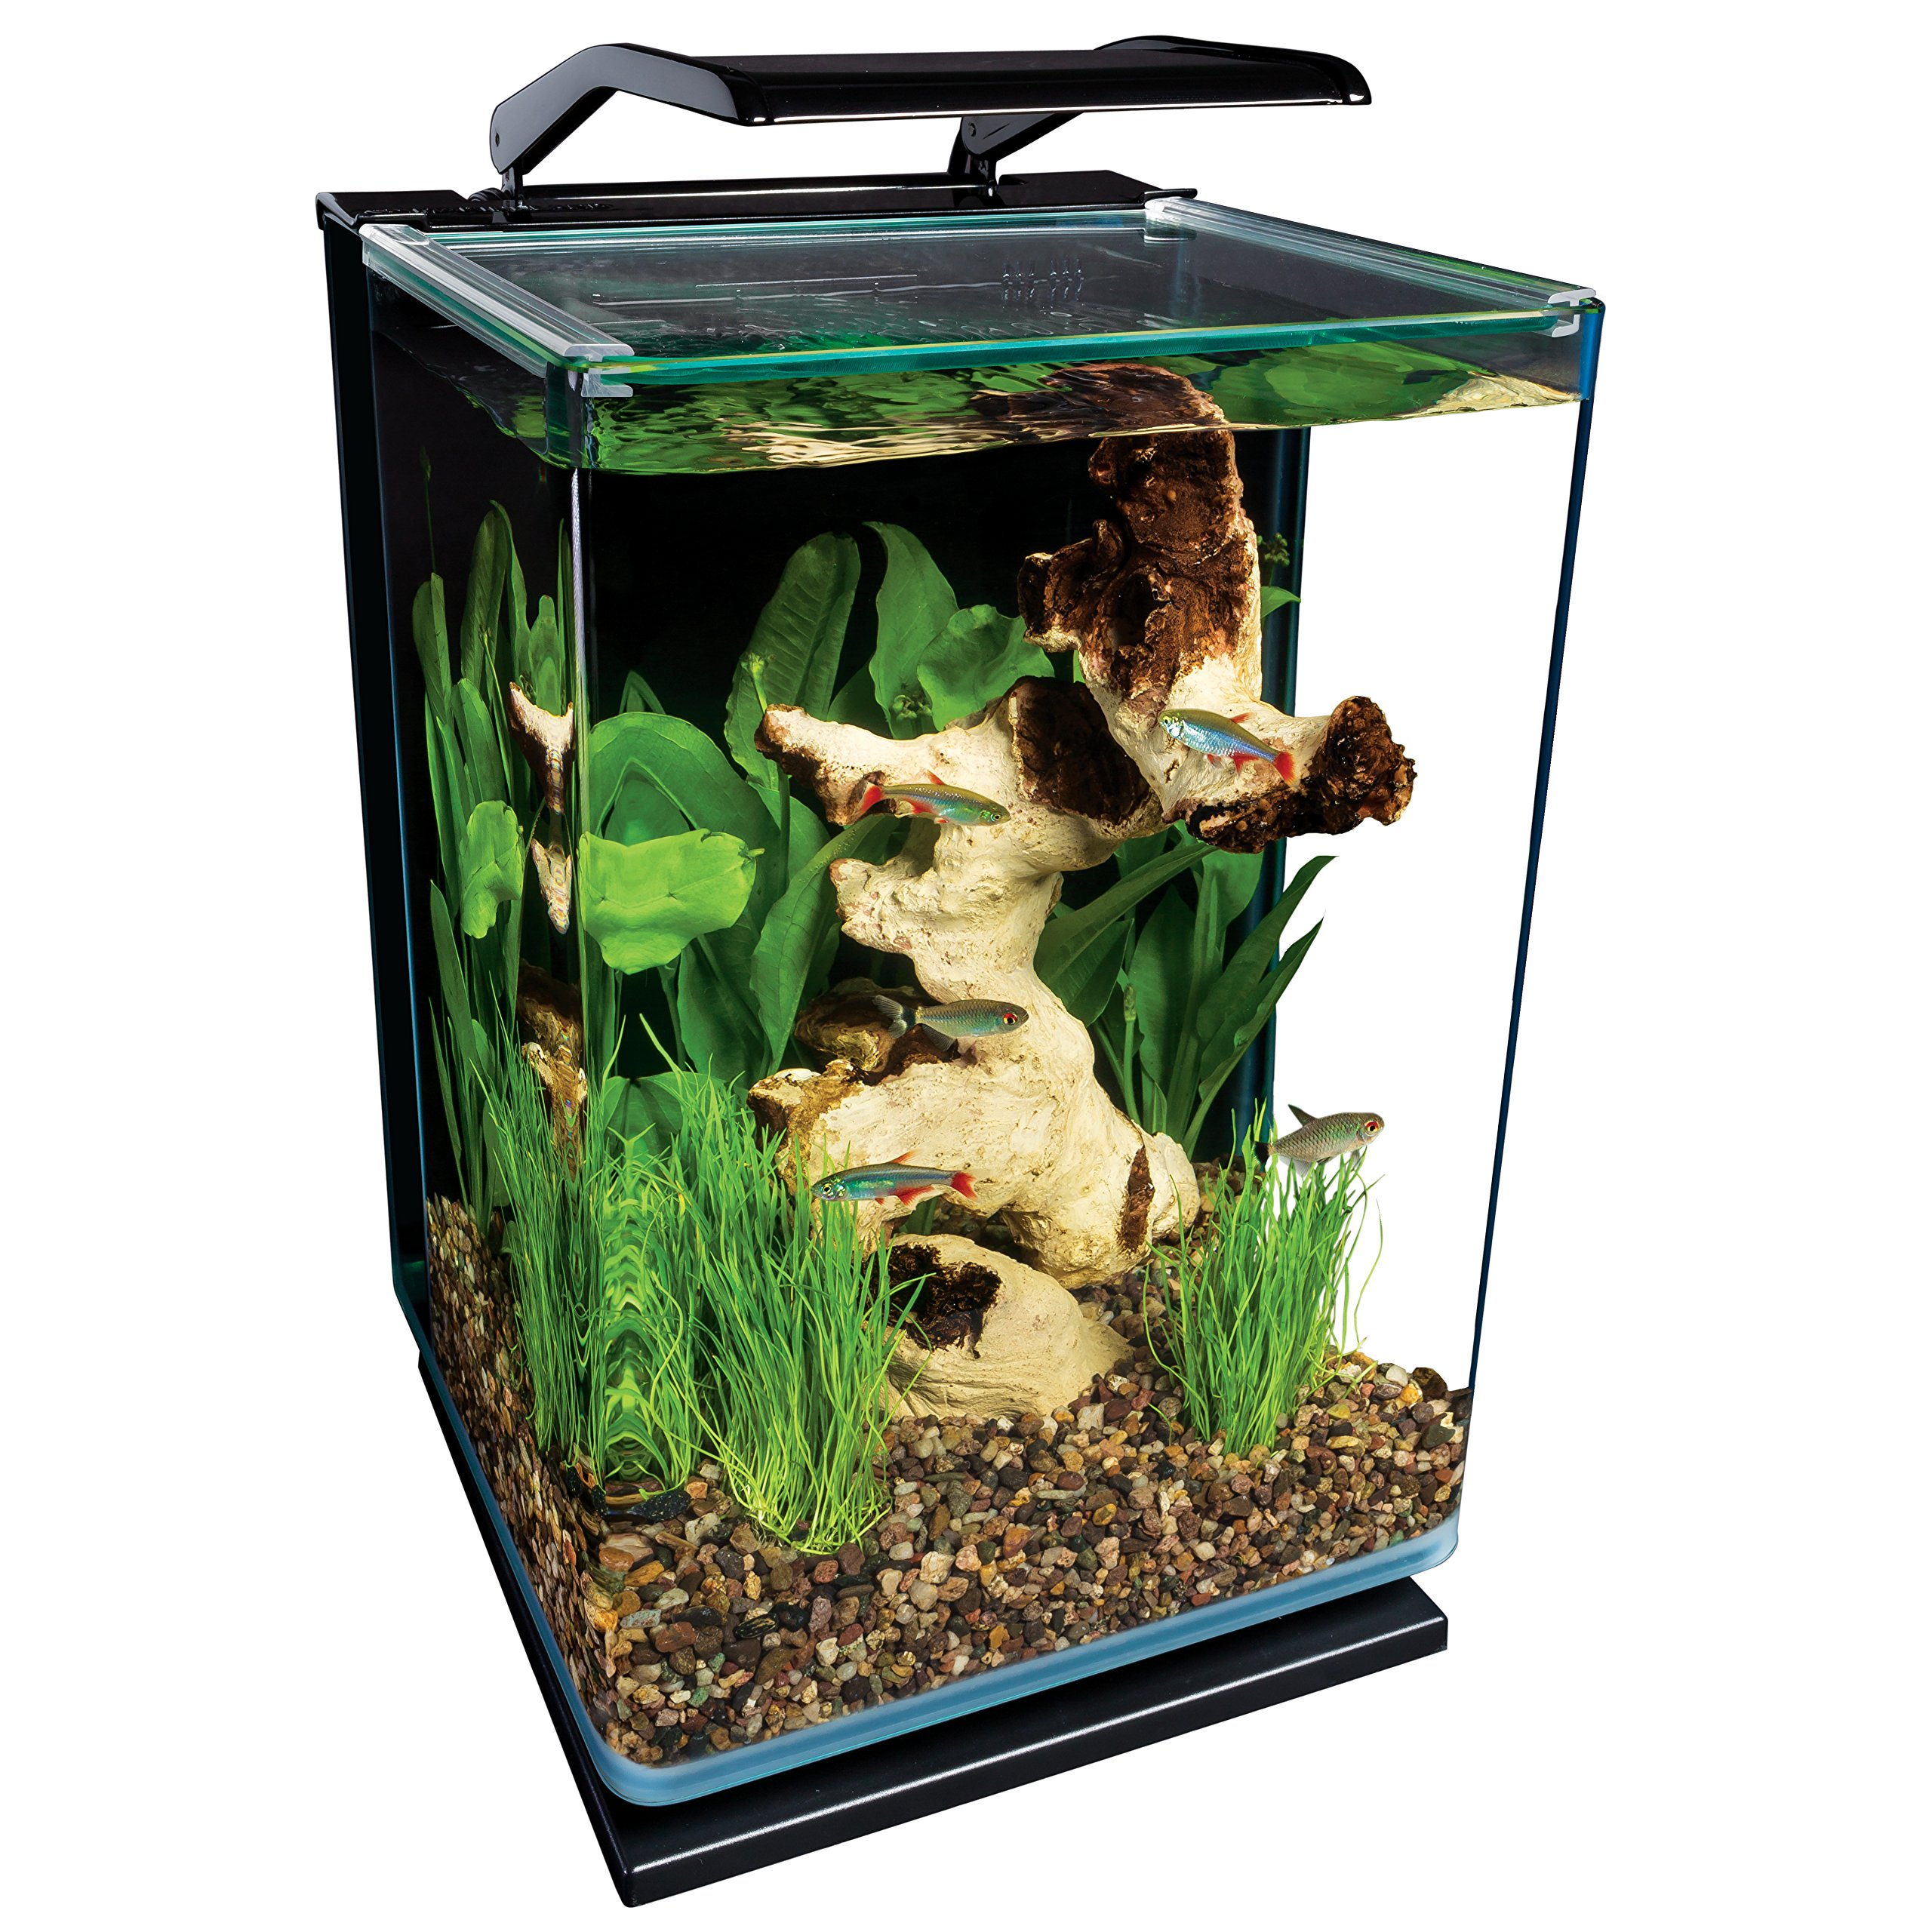 Marineland ML90609 Portrait Aquarium Kit, 5-Gallon w/ Hidden Filter by MarineLand